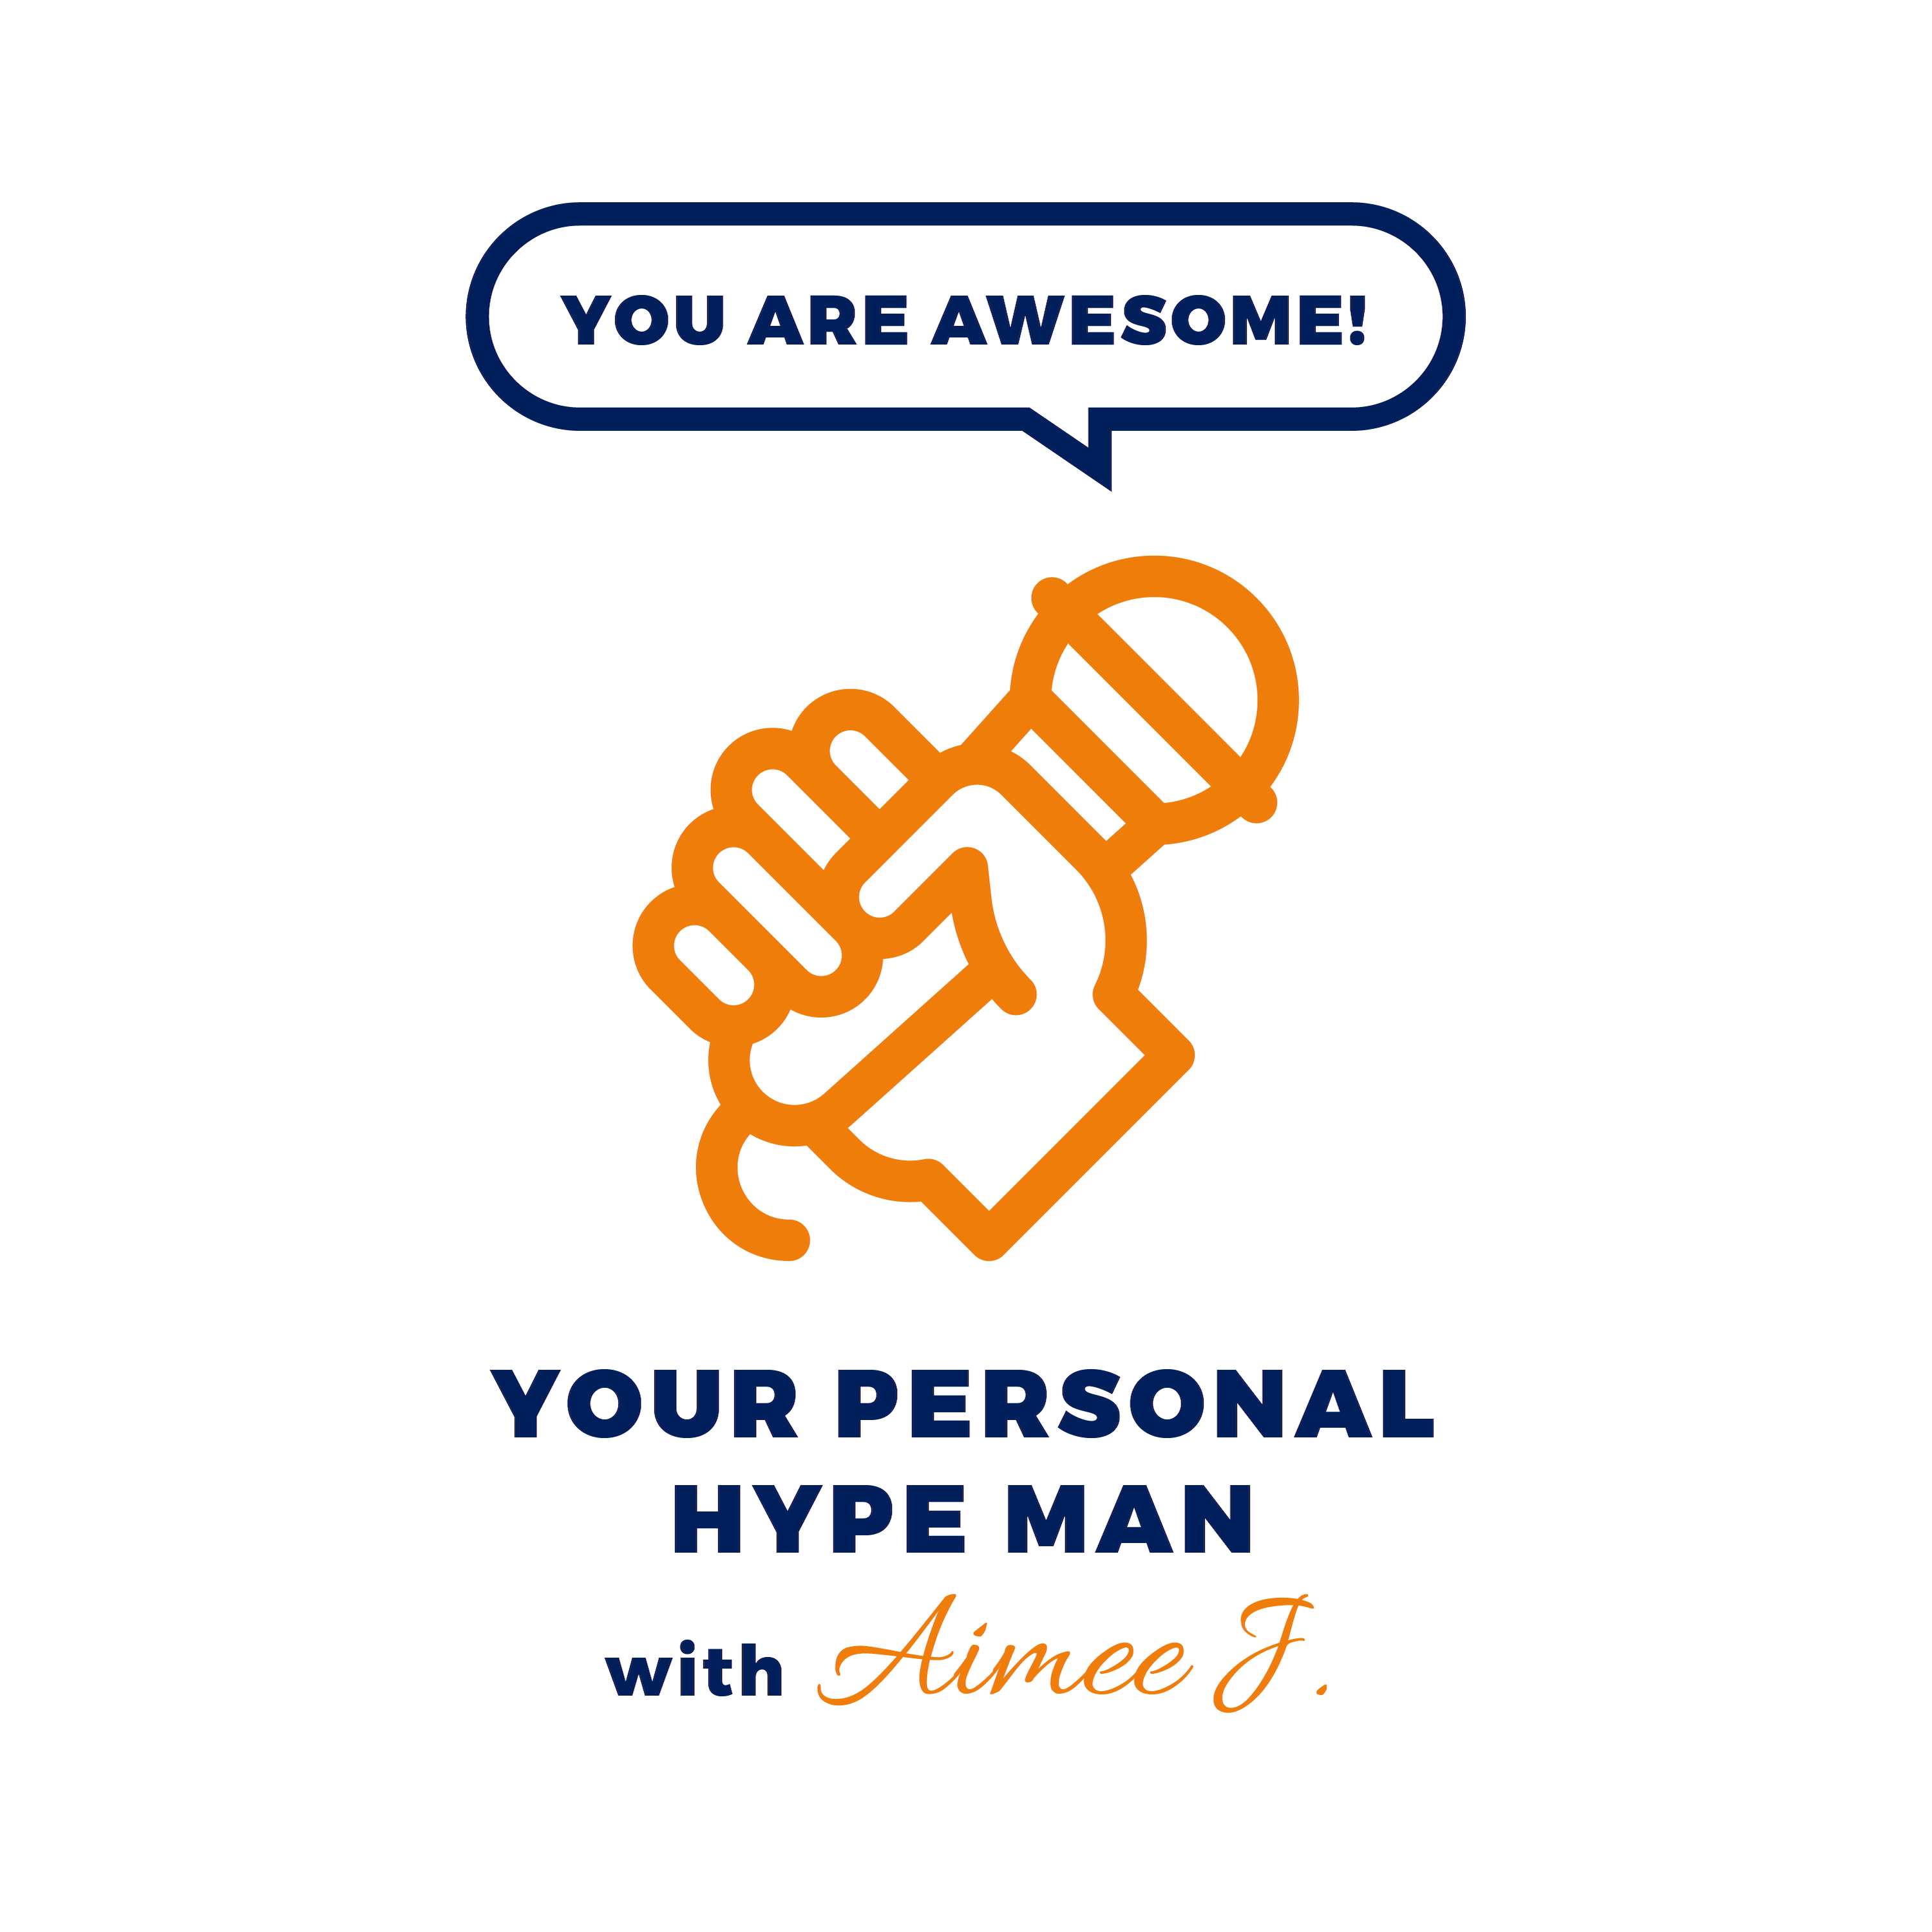 Your Personal Hype Man with Aimee J.